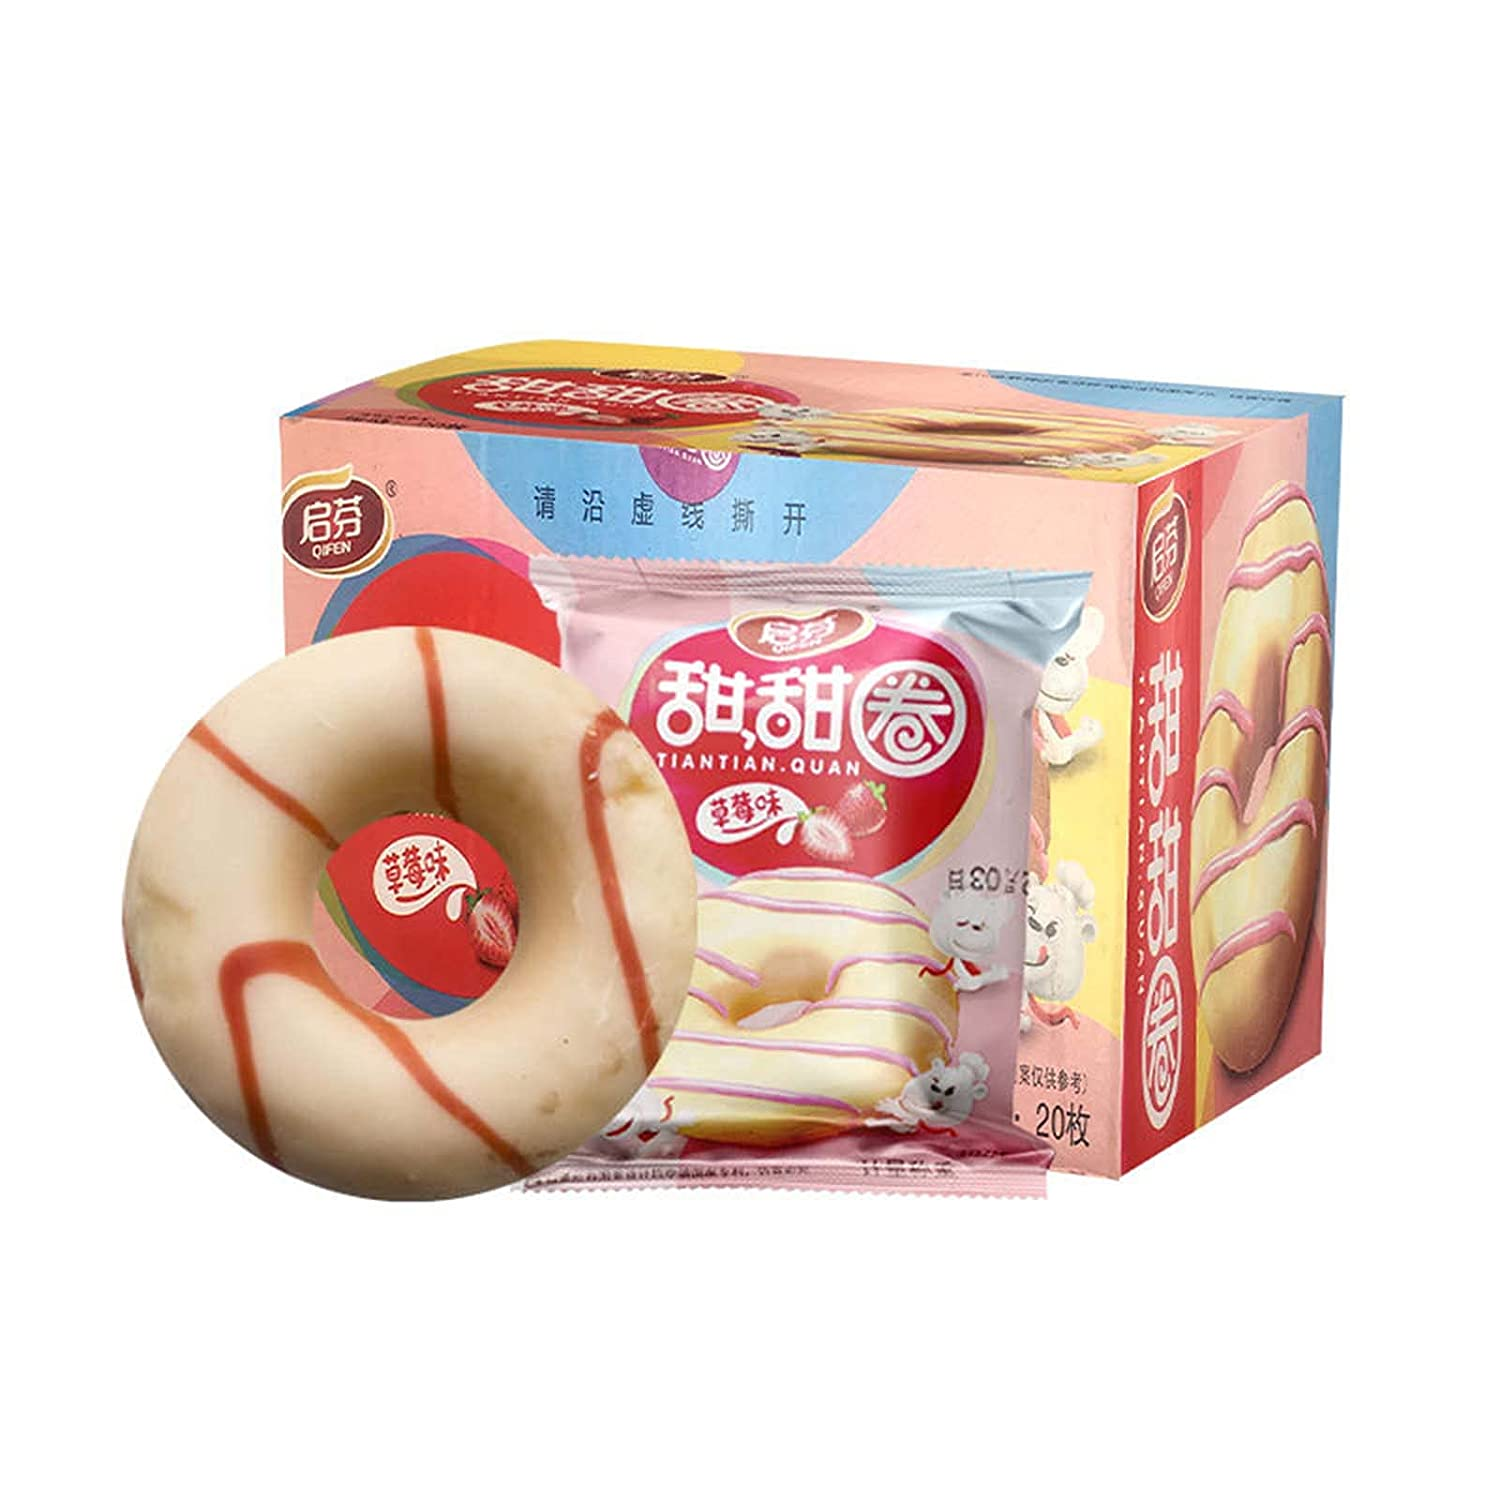 Donuts Strawberry Frosted Donut Max 84% OFF Sandwich Creme 70% OFF Outlet Cookies Limited